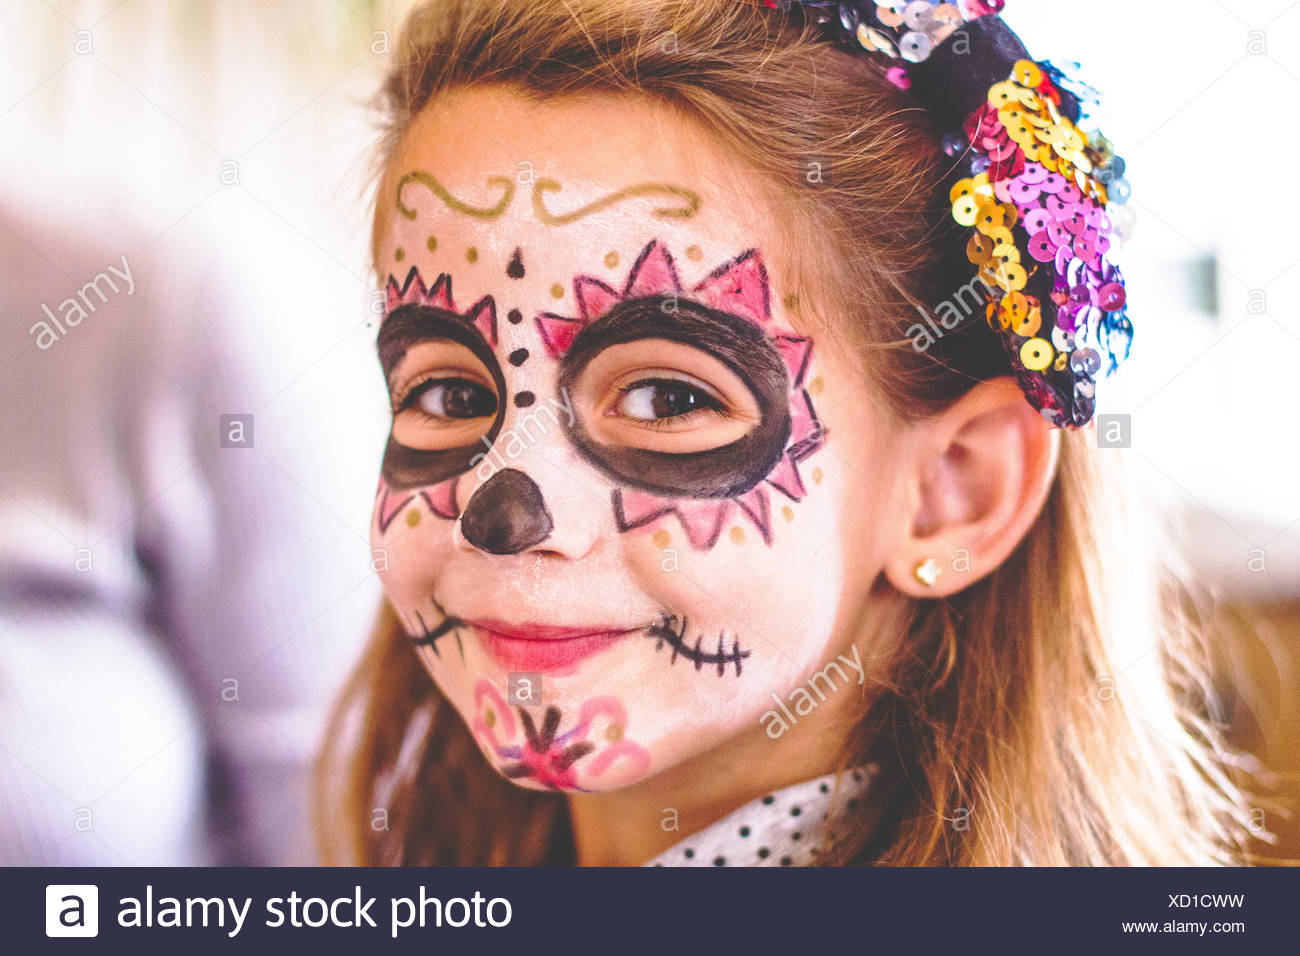 Girl (4-5) with painted face - Stock Image